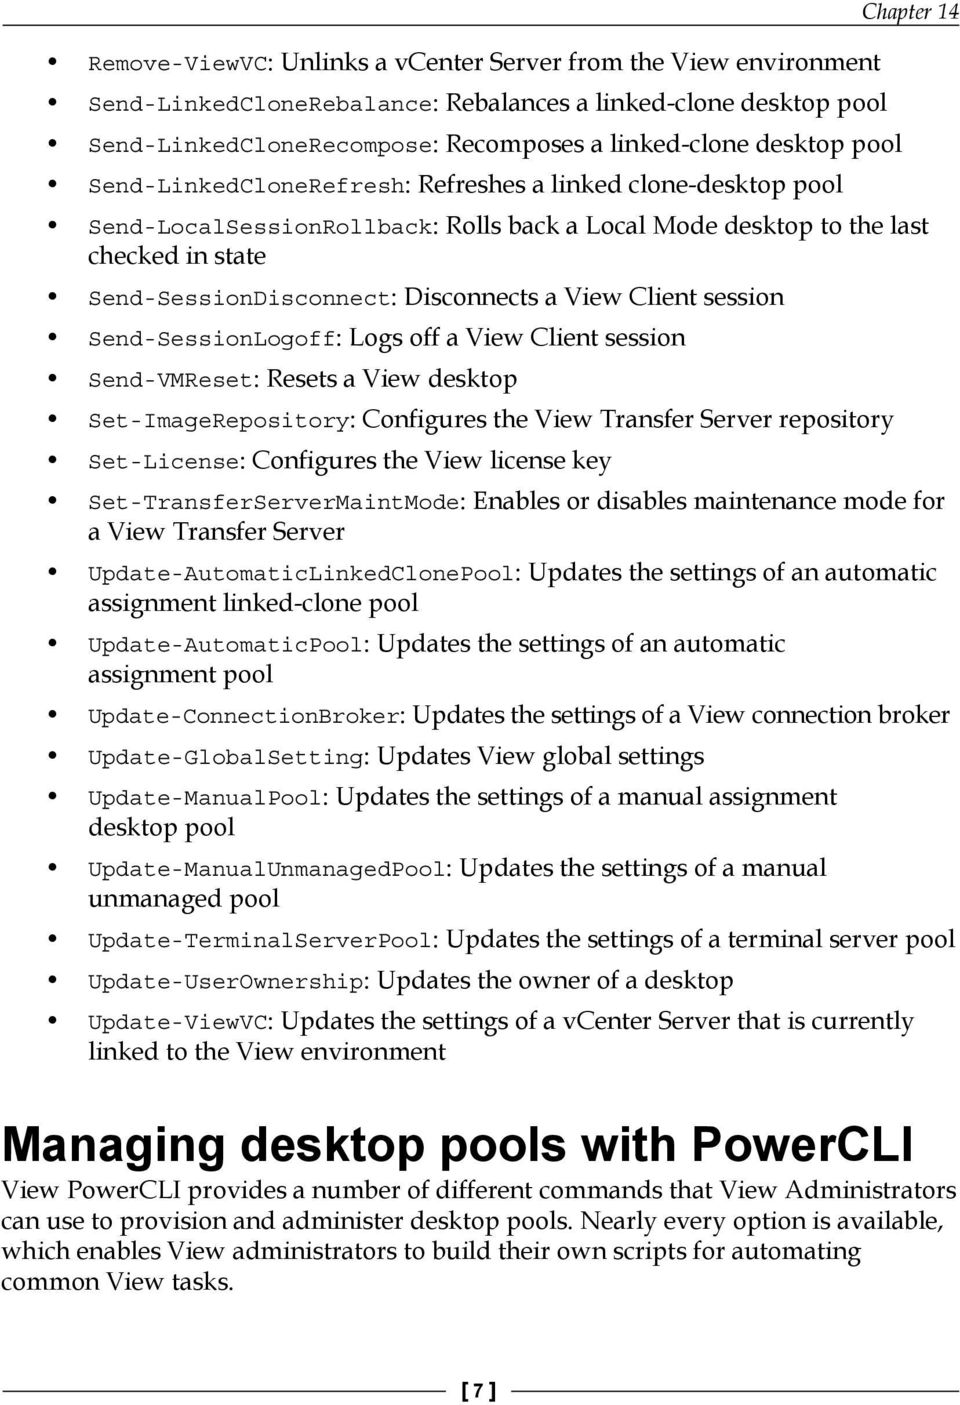 Managing View with PowerCLI - PDF